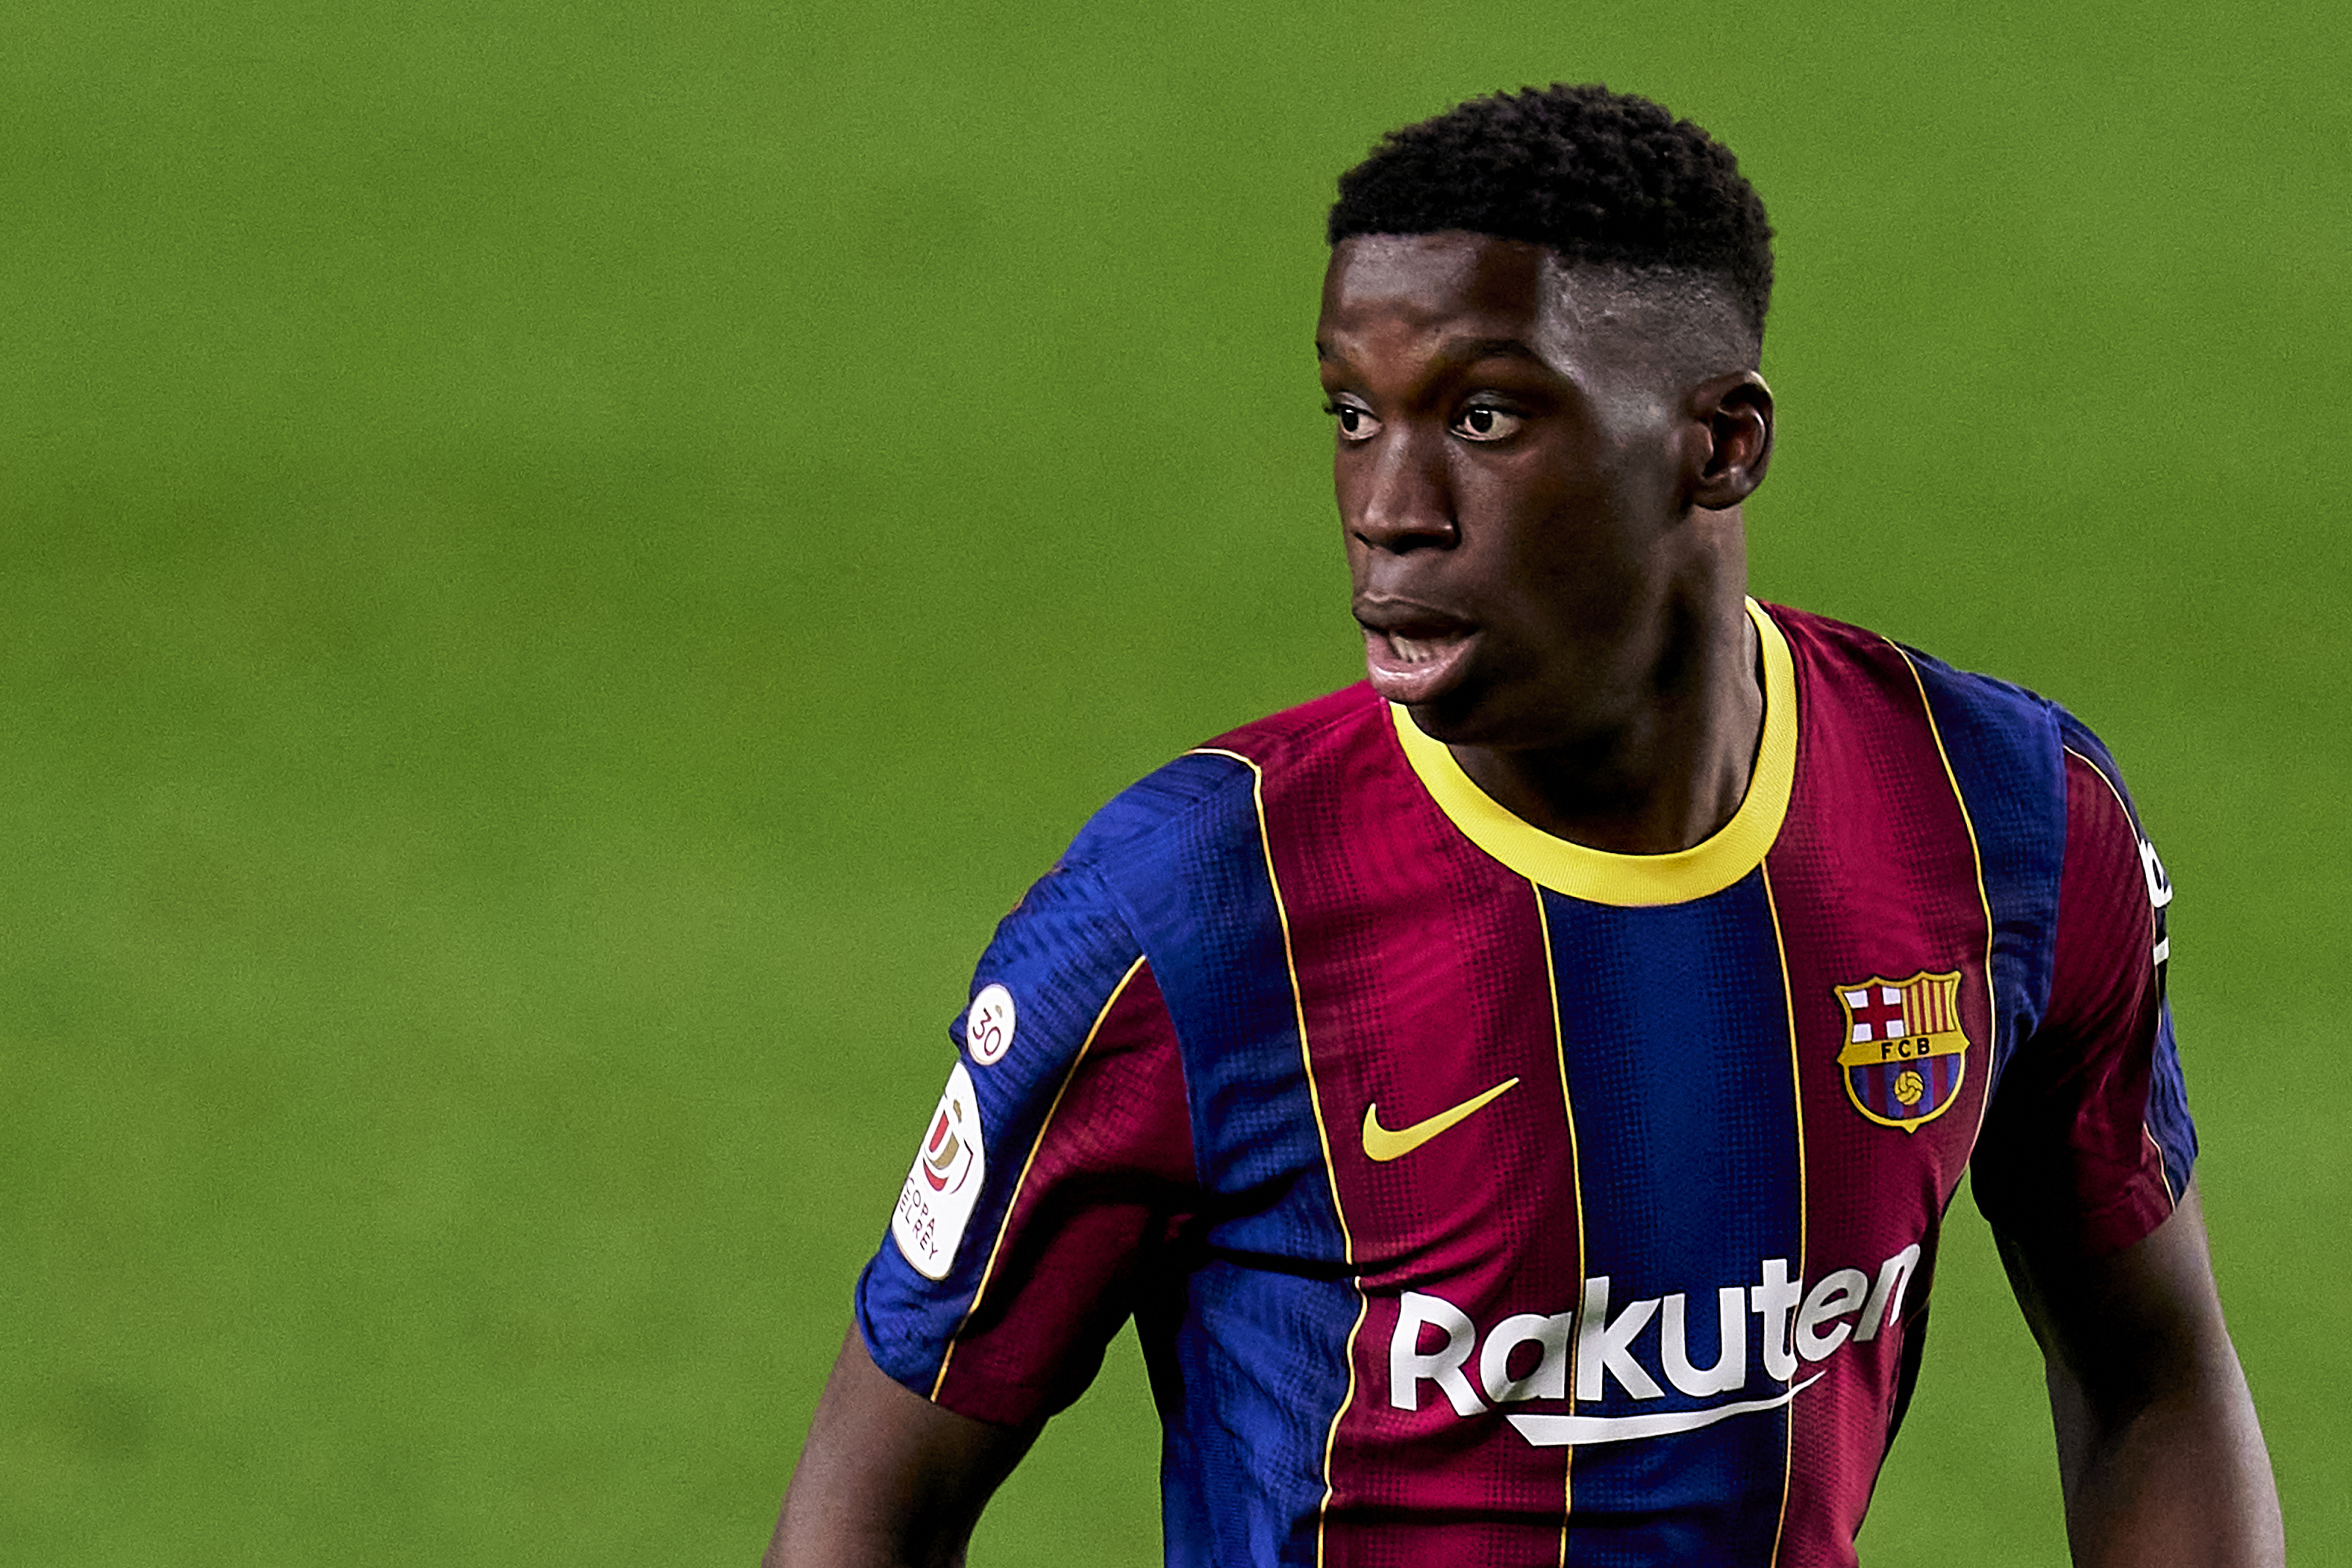 Ilaix Moriba subjected to racial abuse after stalling contract with  Barcelona